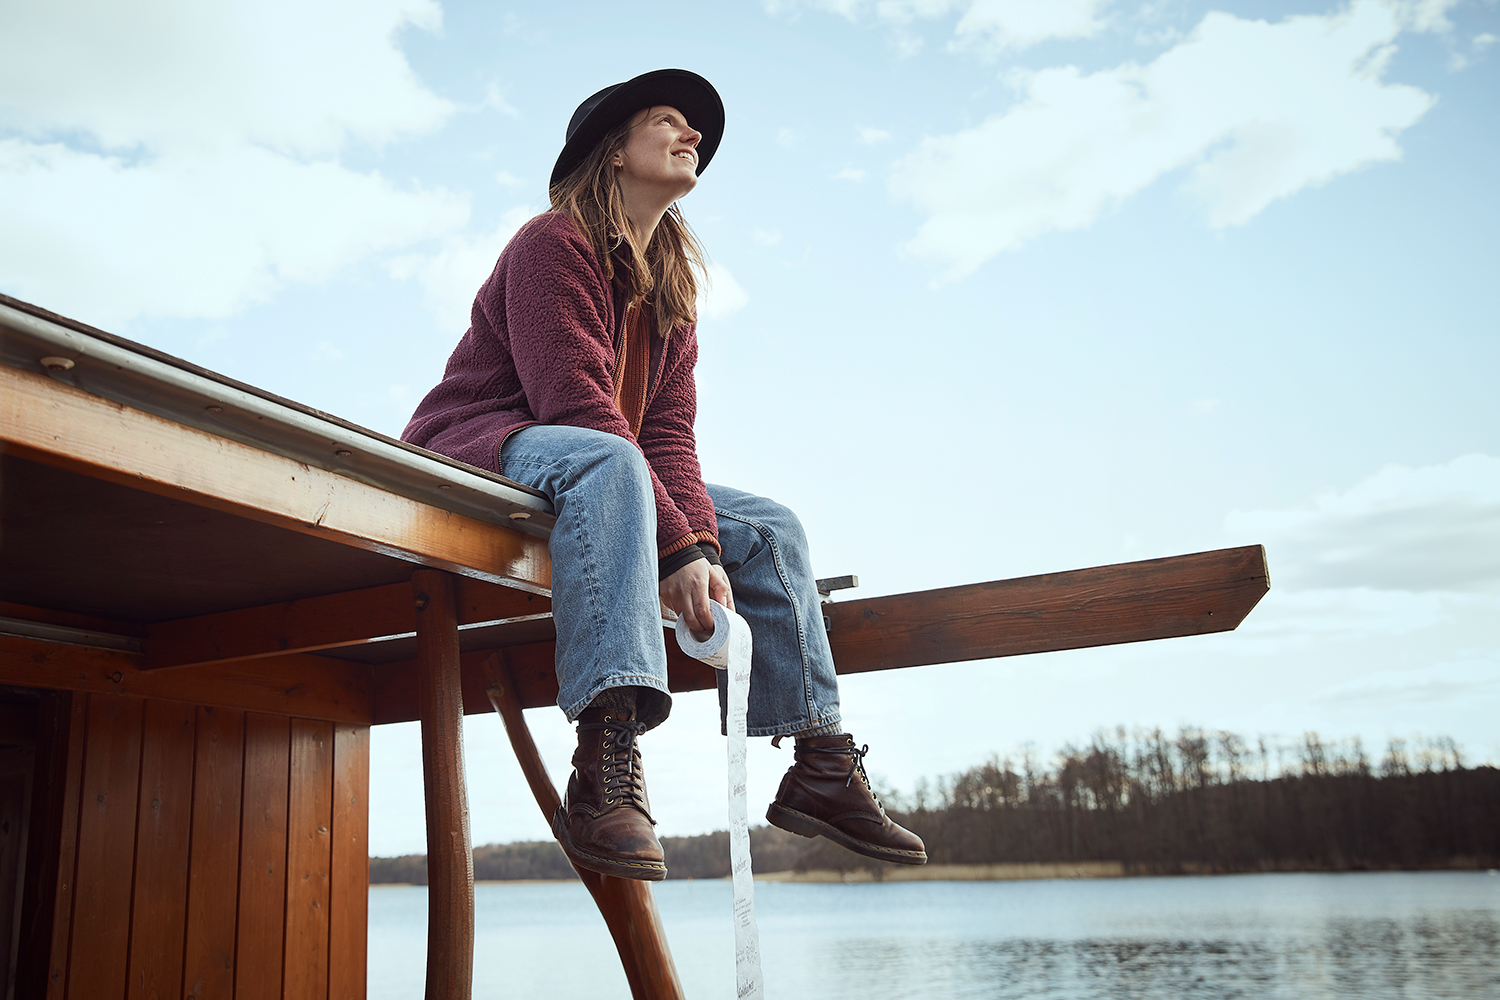 Girl sits on the roof of a raft holding a goldeimer toilet roll